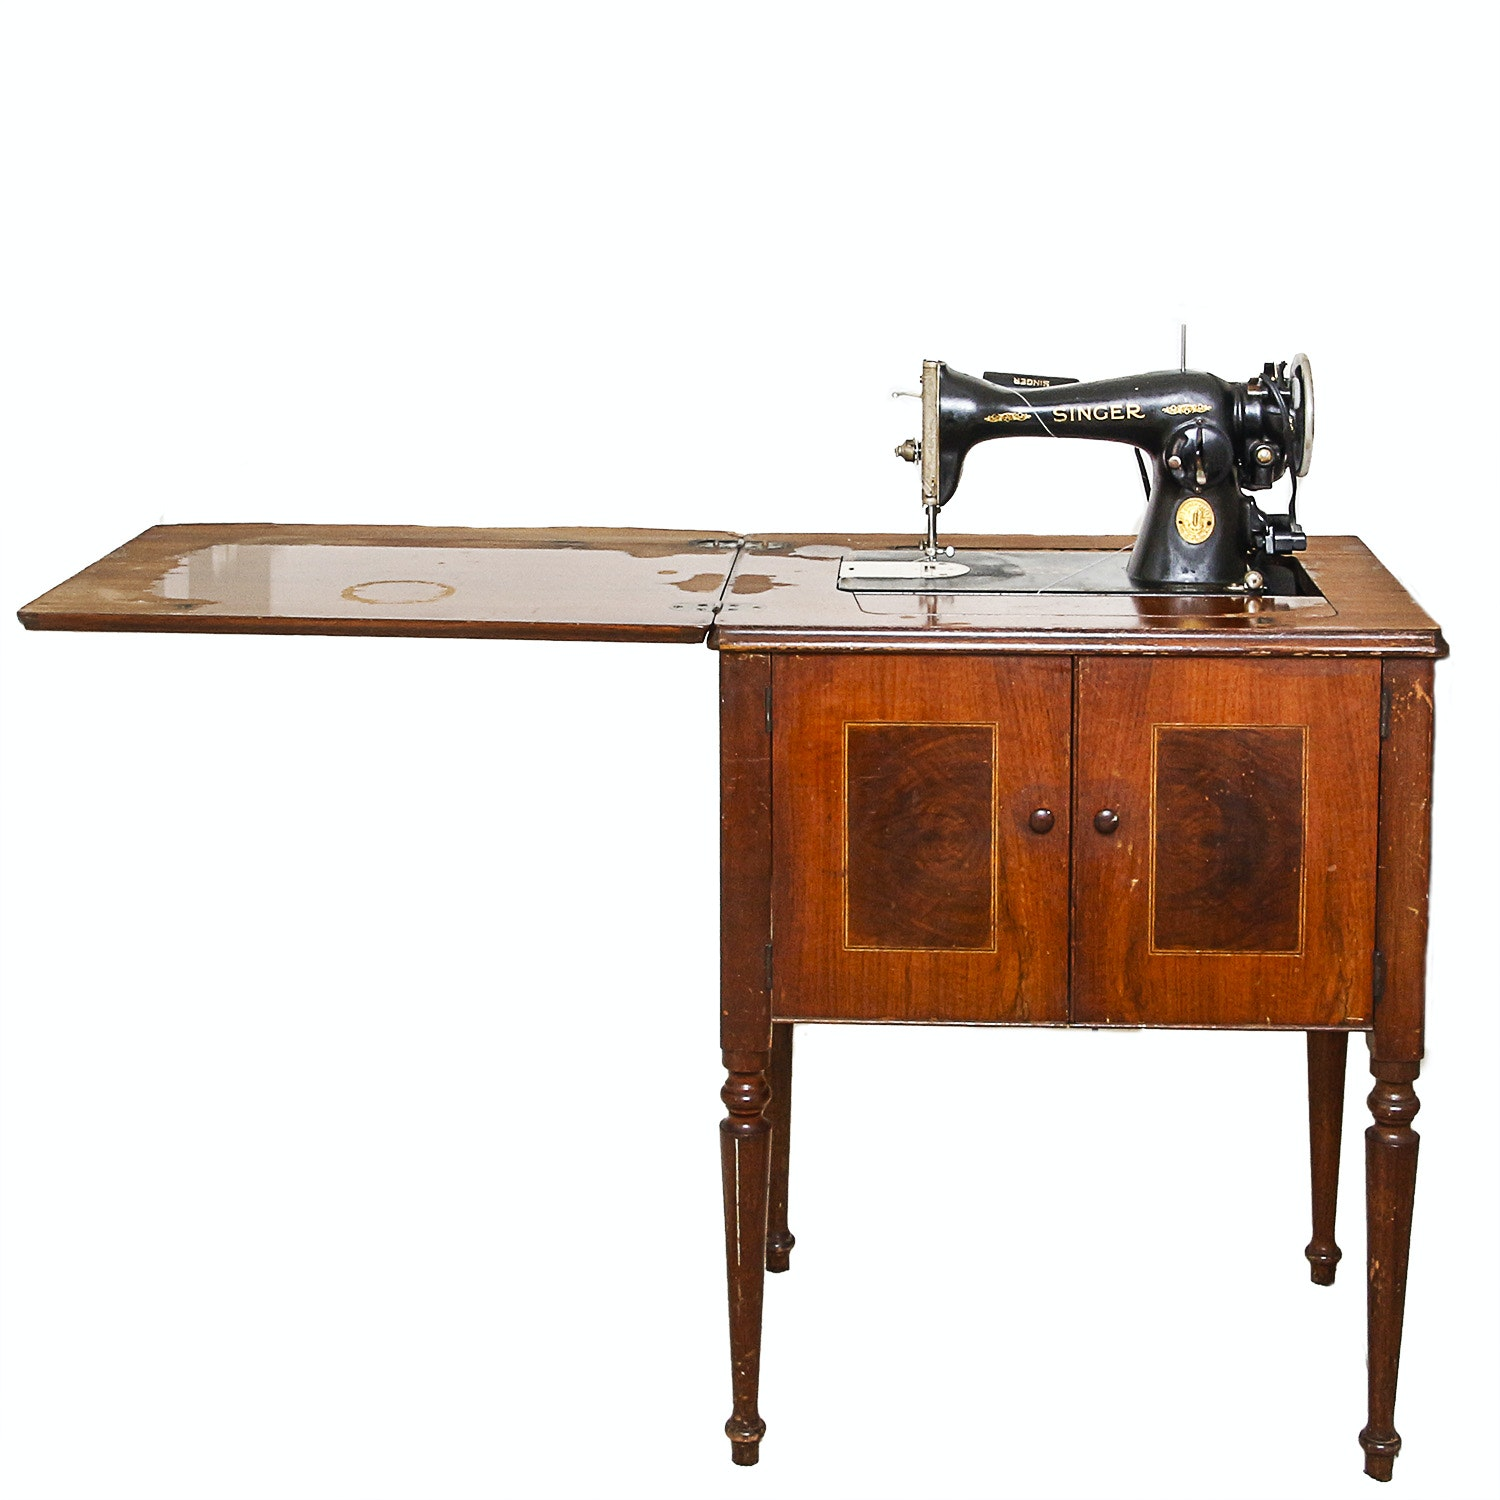 Vintage Singer Sewing Machine And Wood Cabinet ...